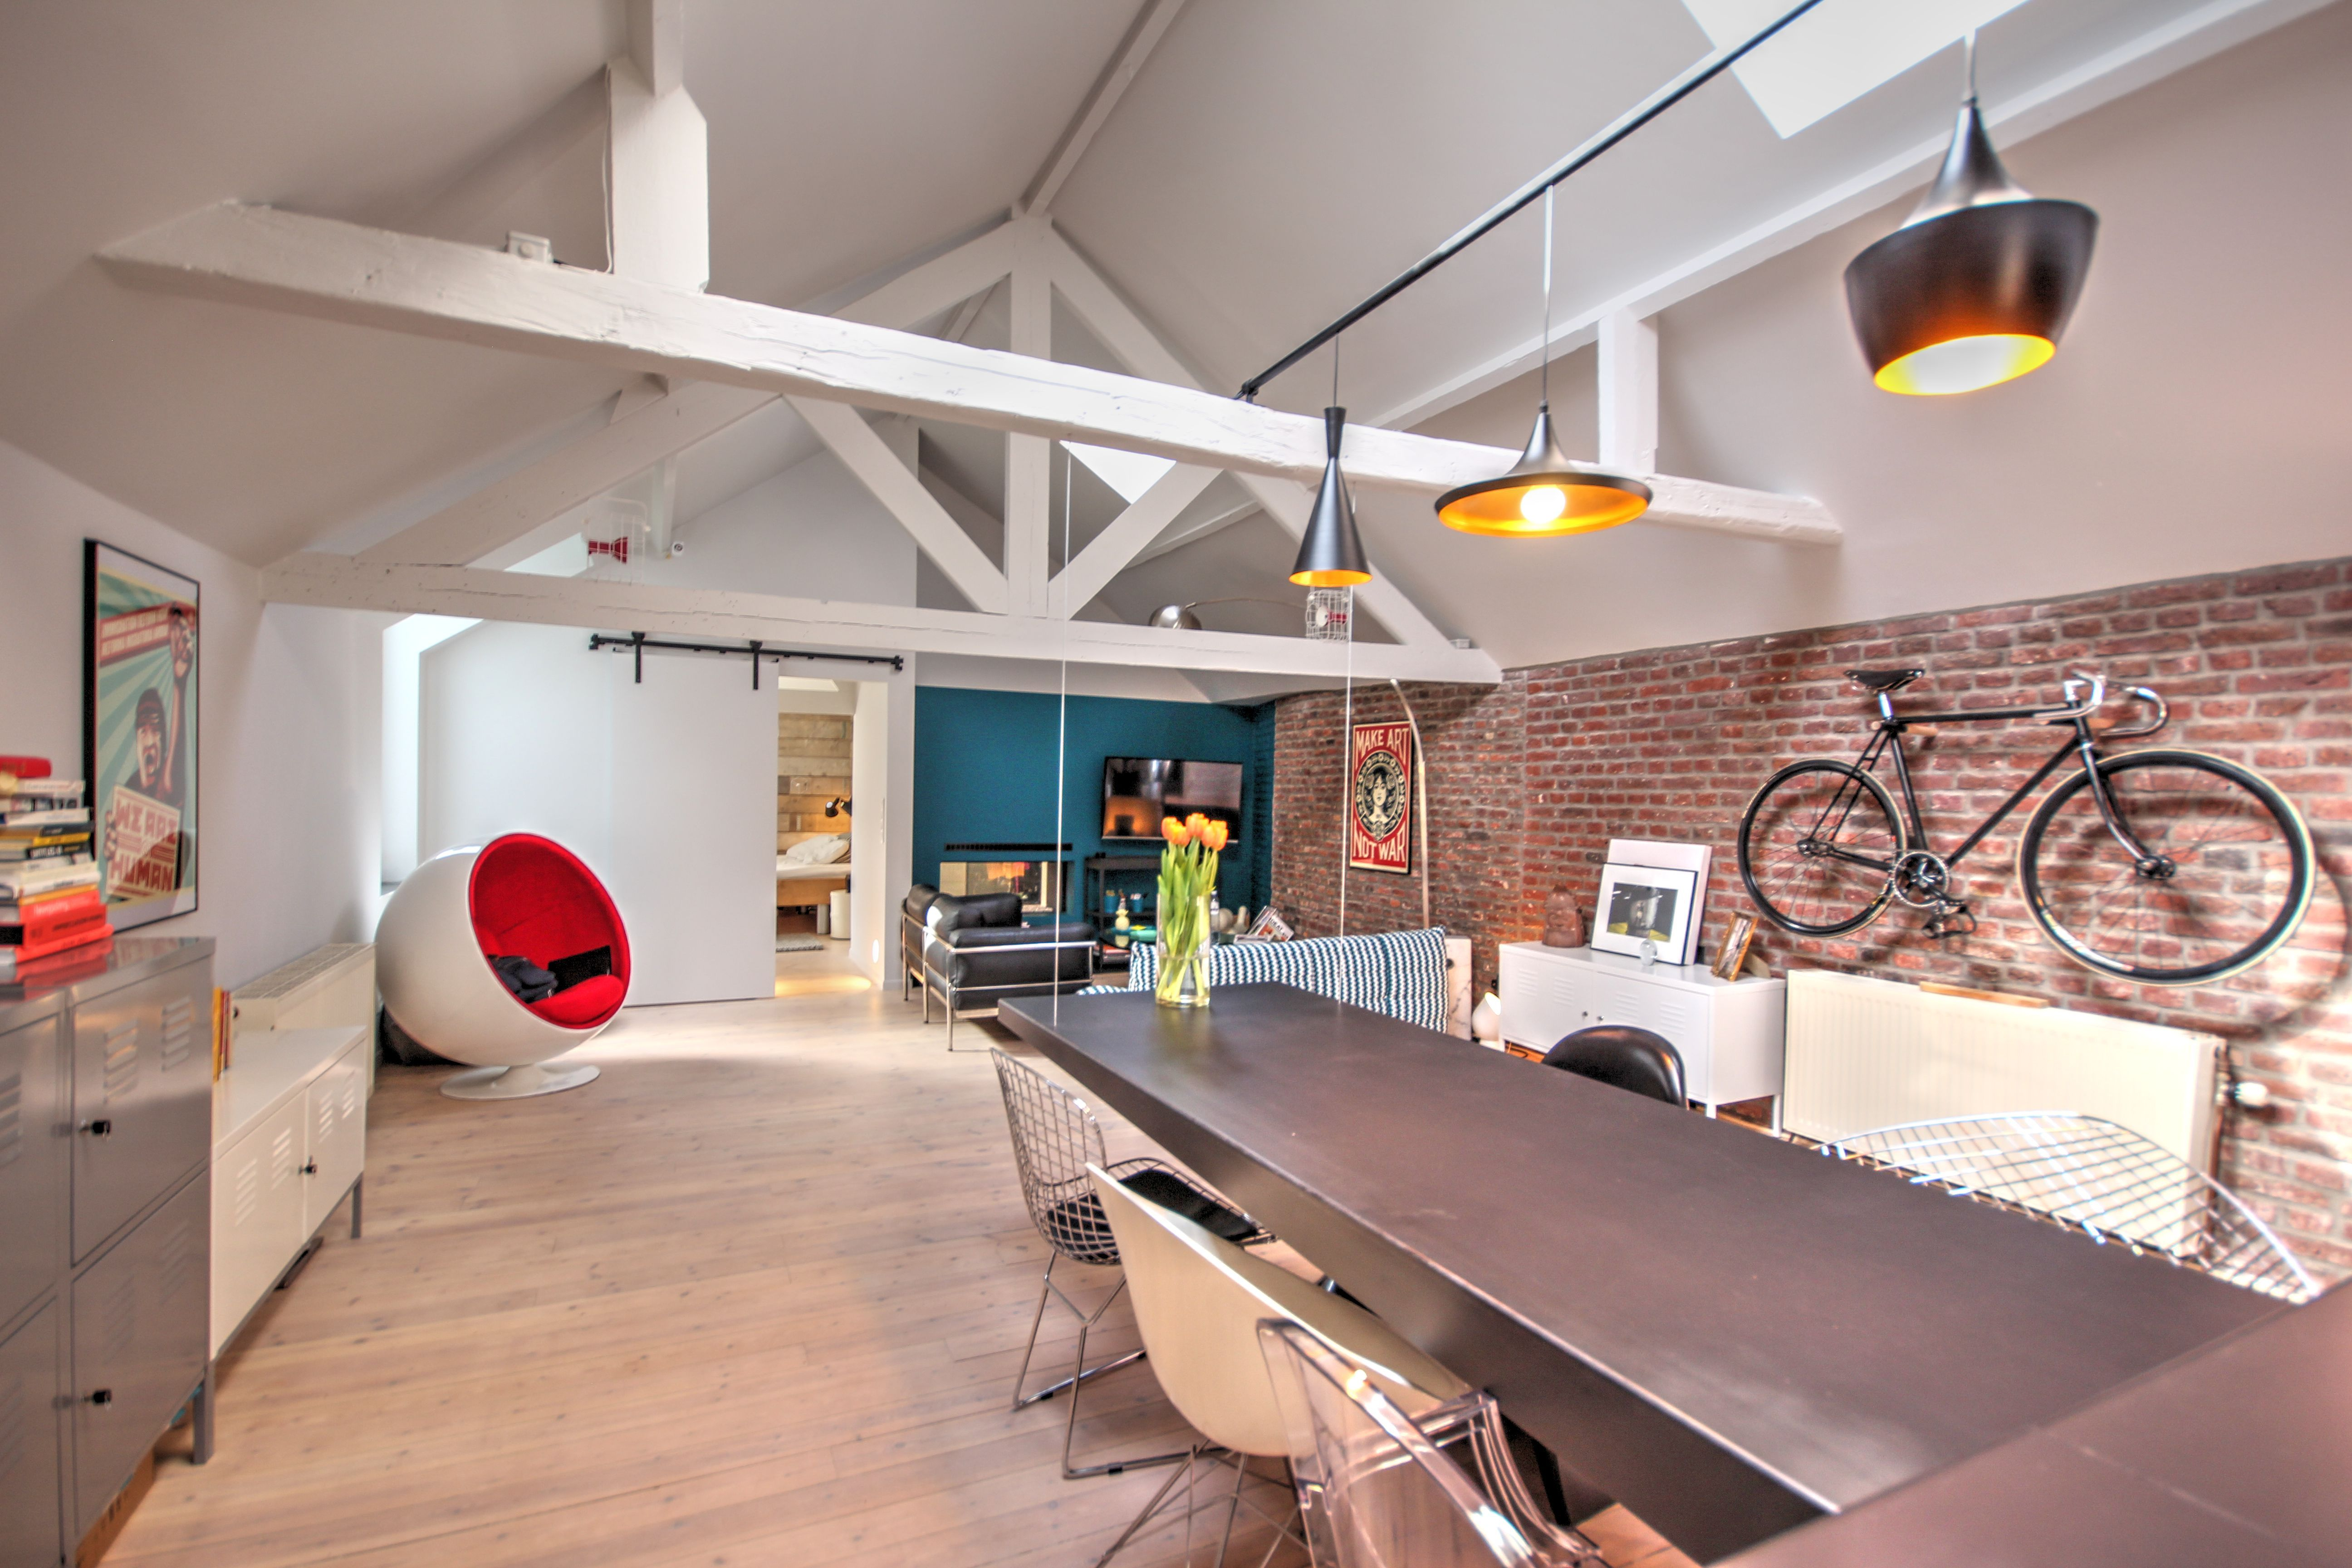 Pin By Jeremy Coxet On Loft Apartment Renovation Liege Be Apartment Renovation Loft Apartment Home